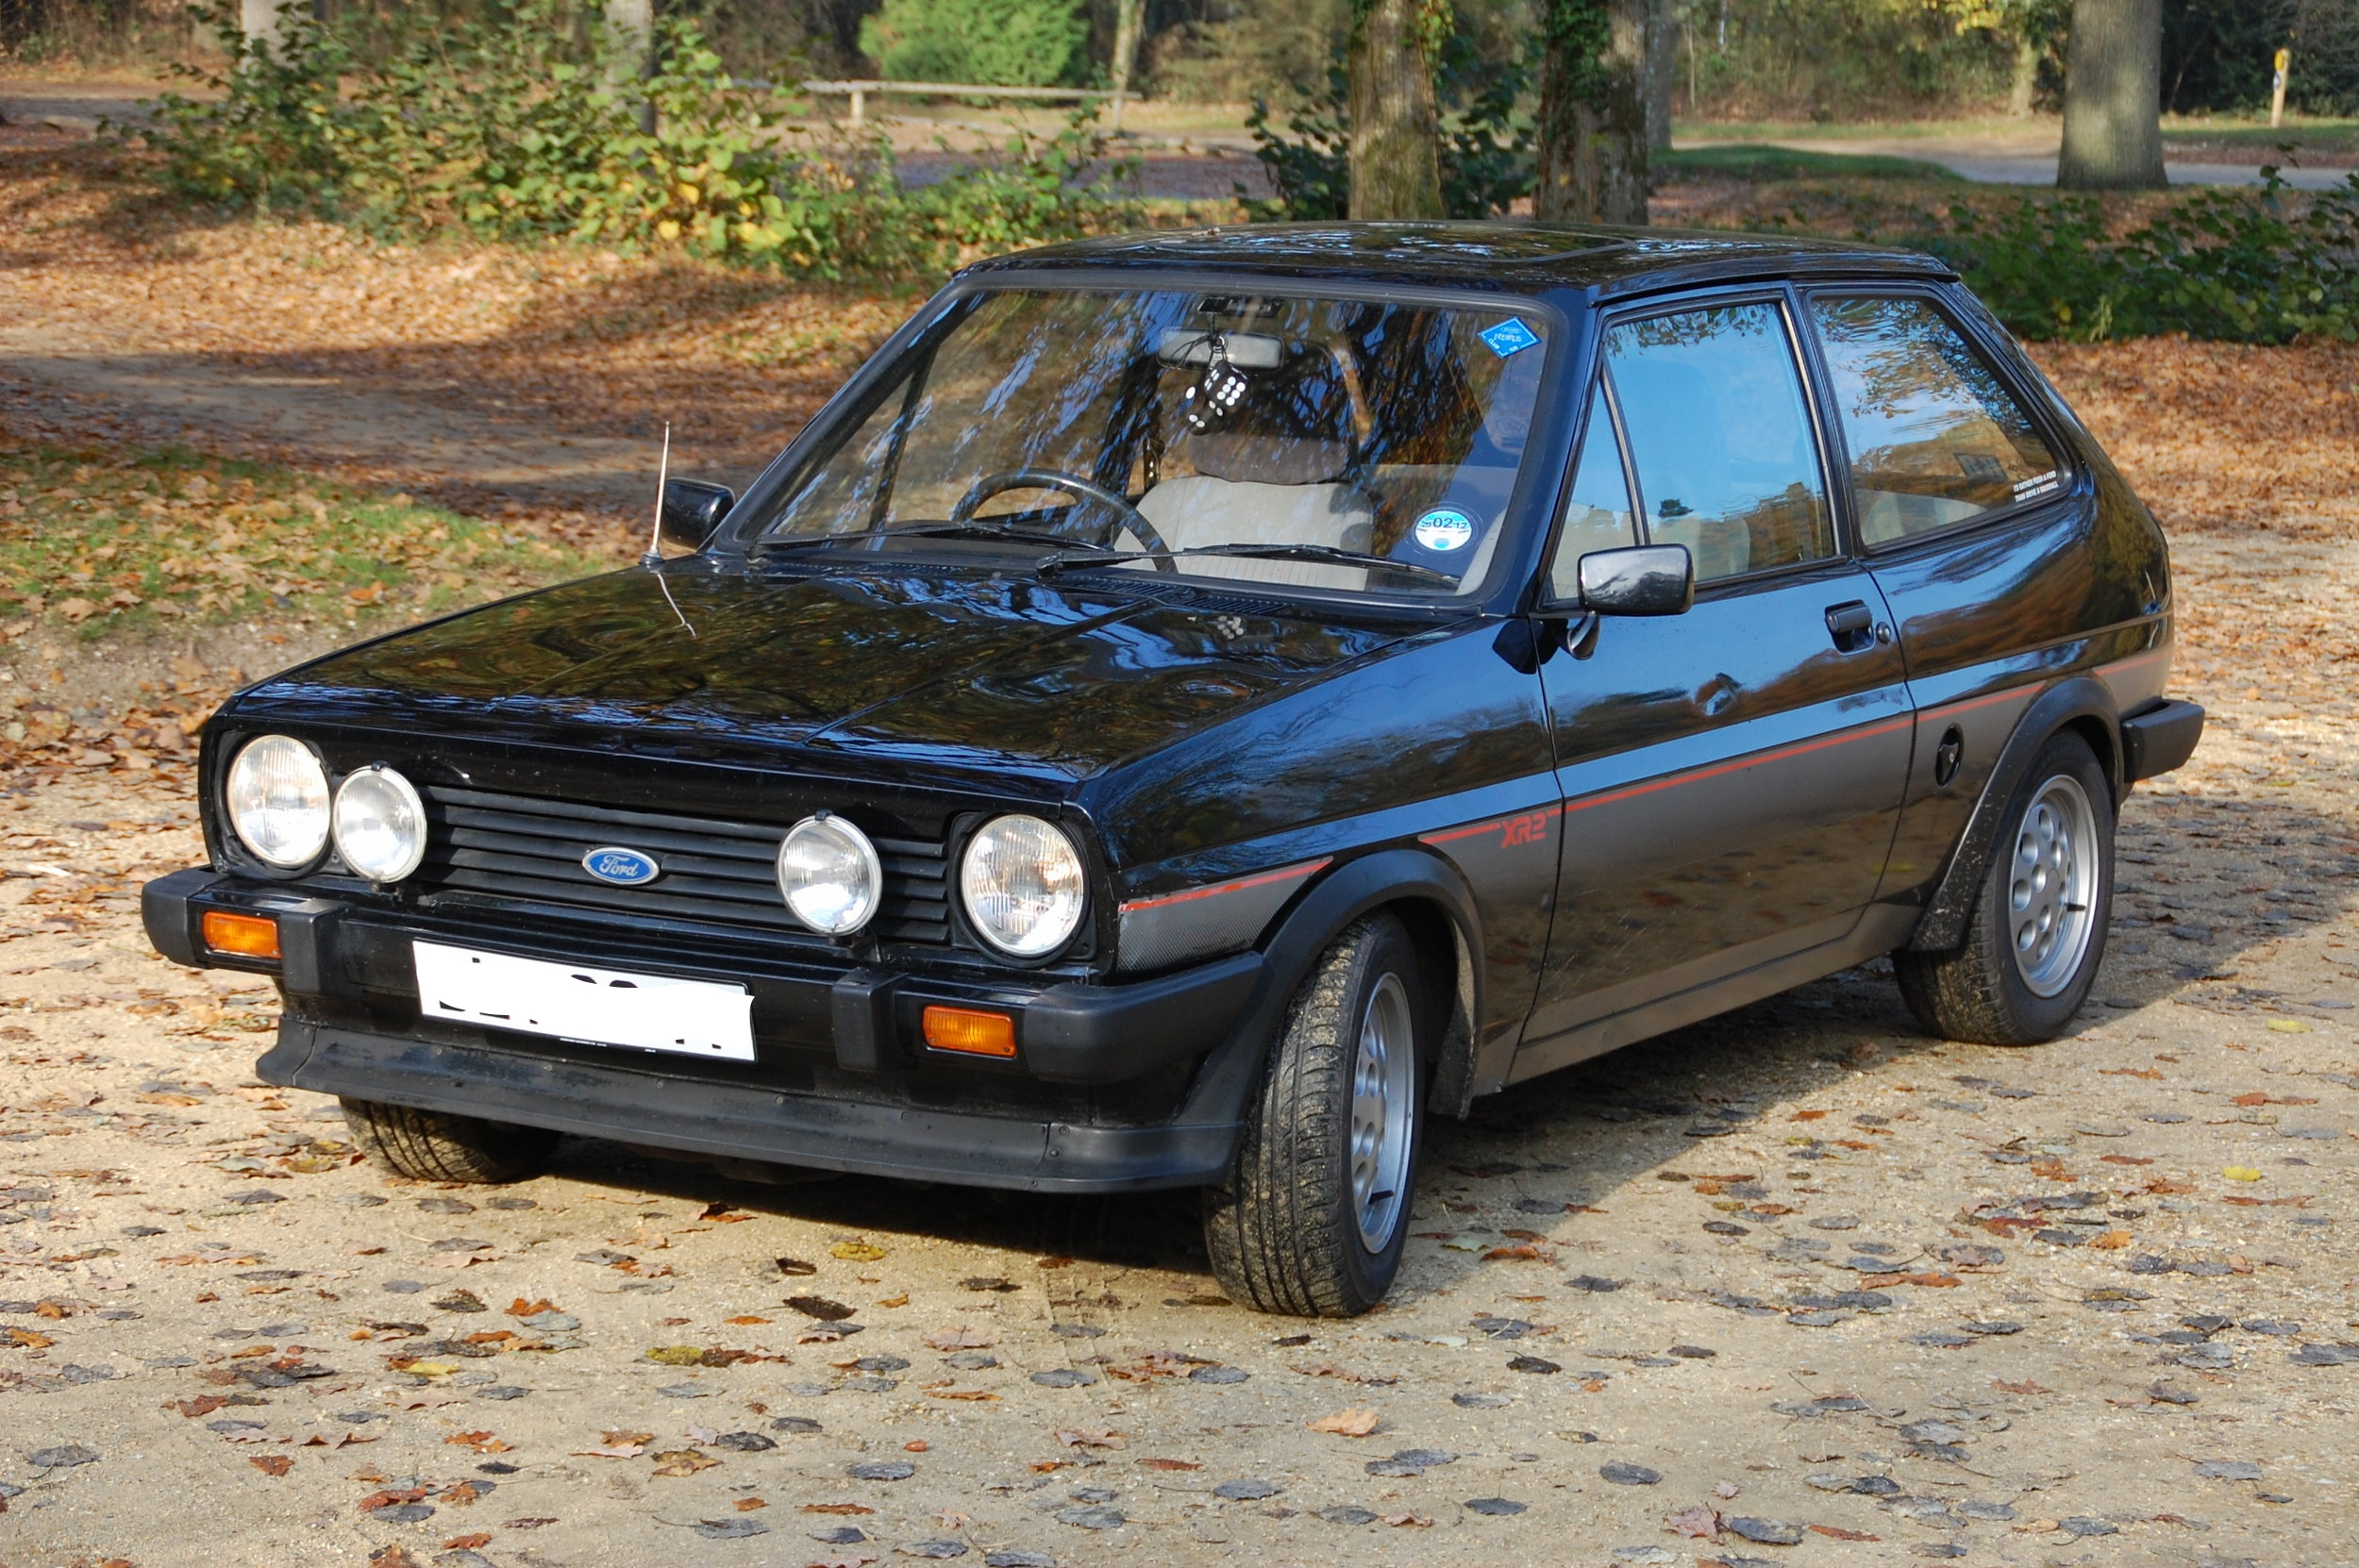 Marcus's first car. Ford Fiesta XR2. Marcus's Fiesta was a different color, but the body was the same.